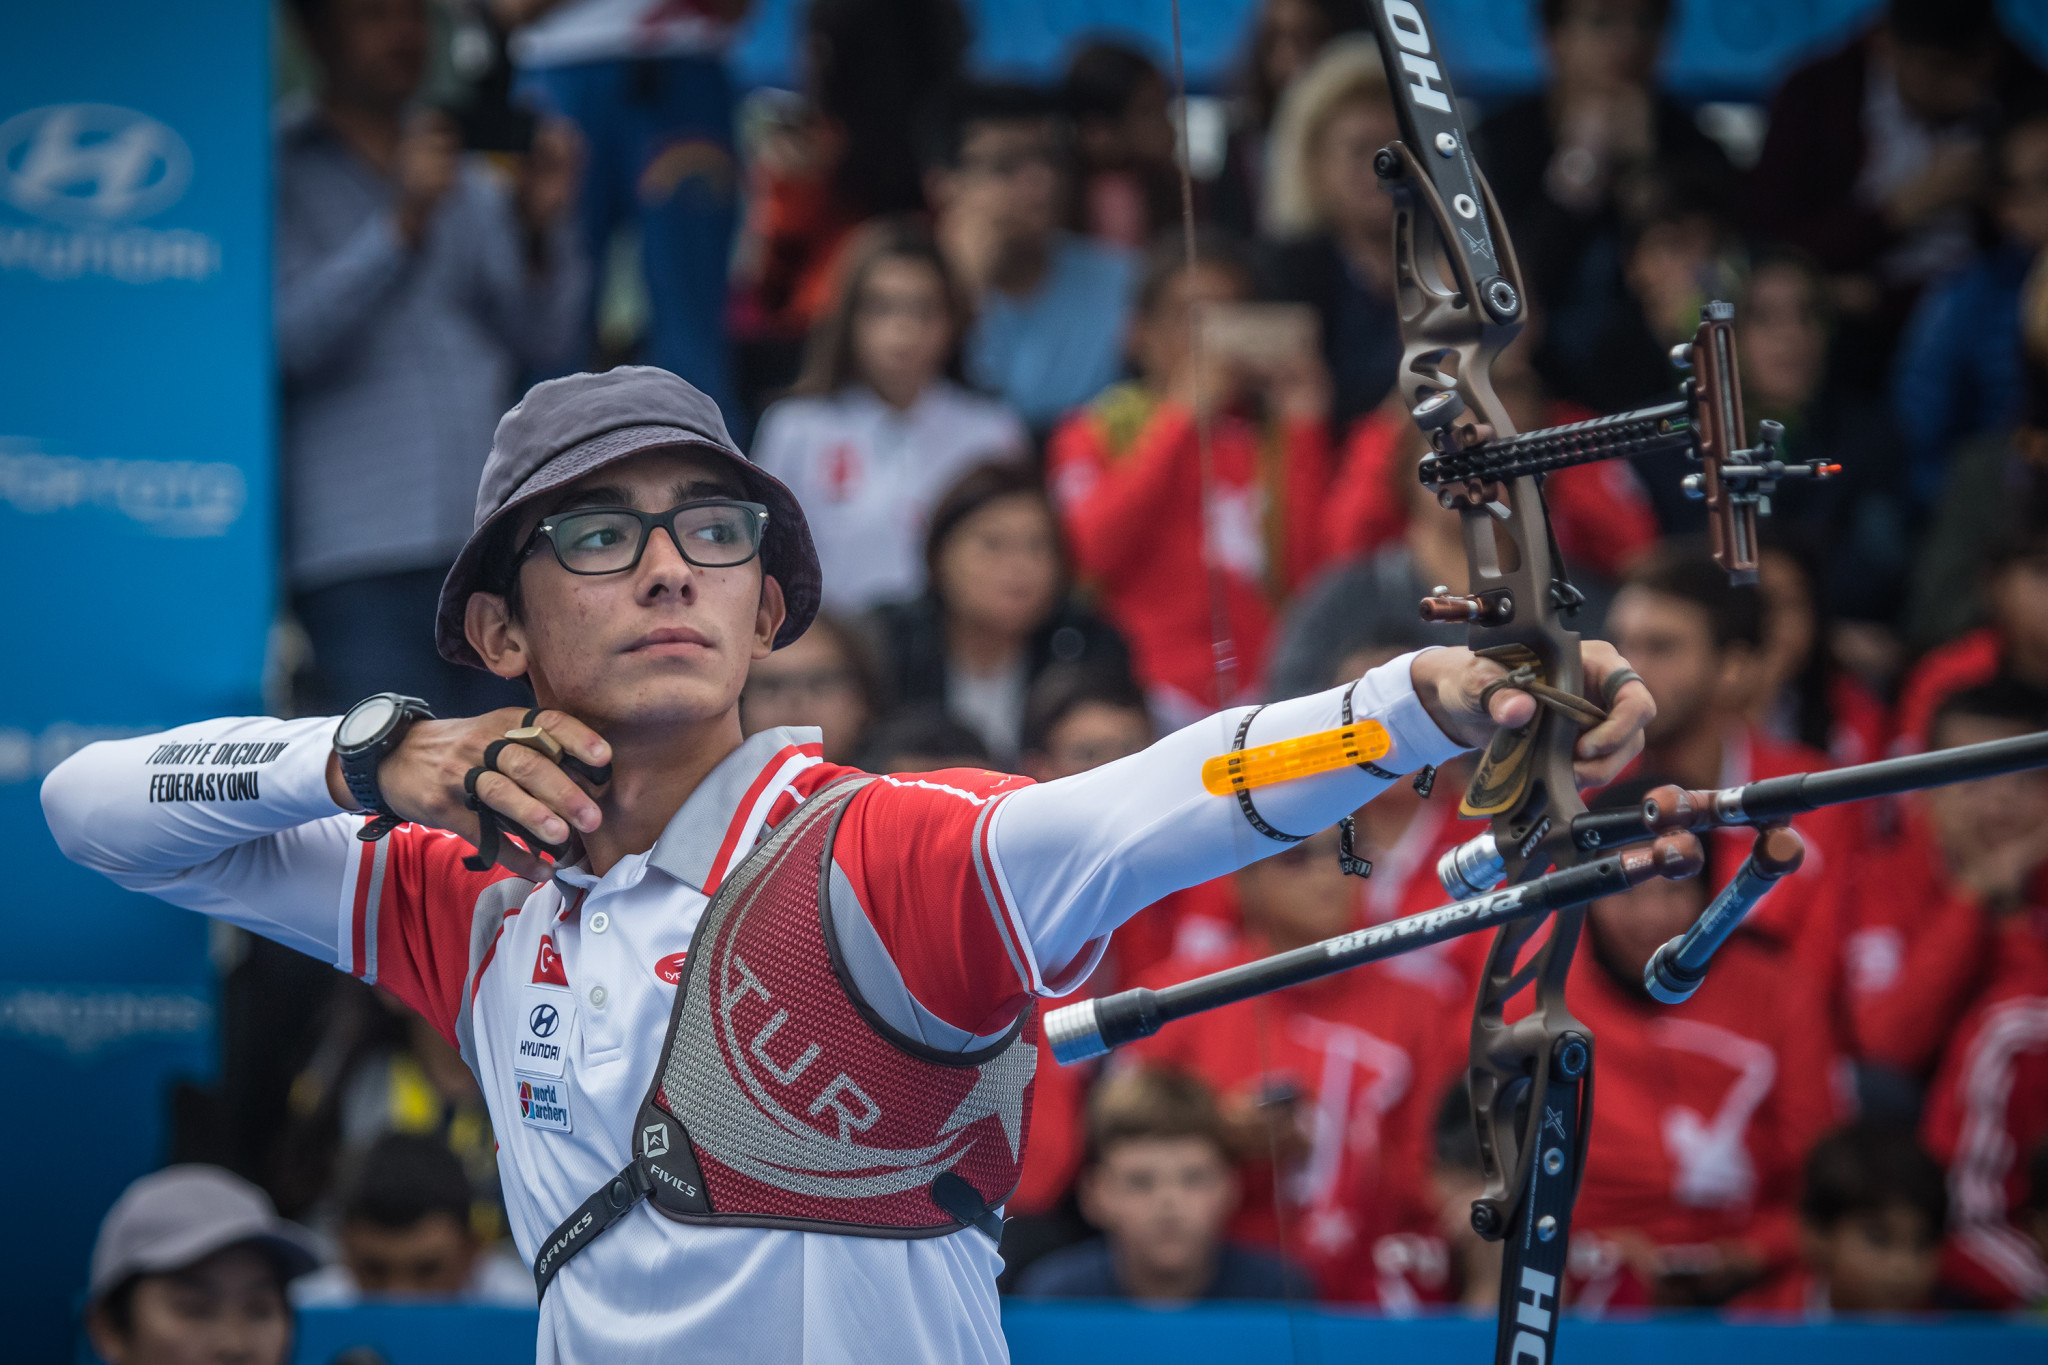 Turkish duo earn recurve prizes at World Archery Athlete of the Year awards